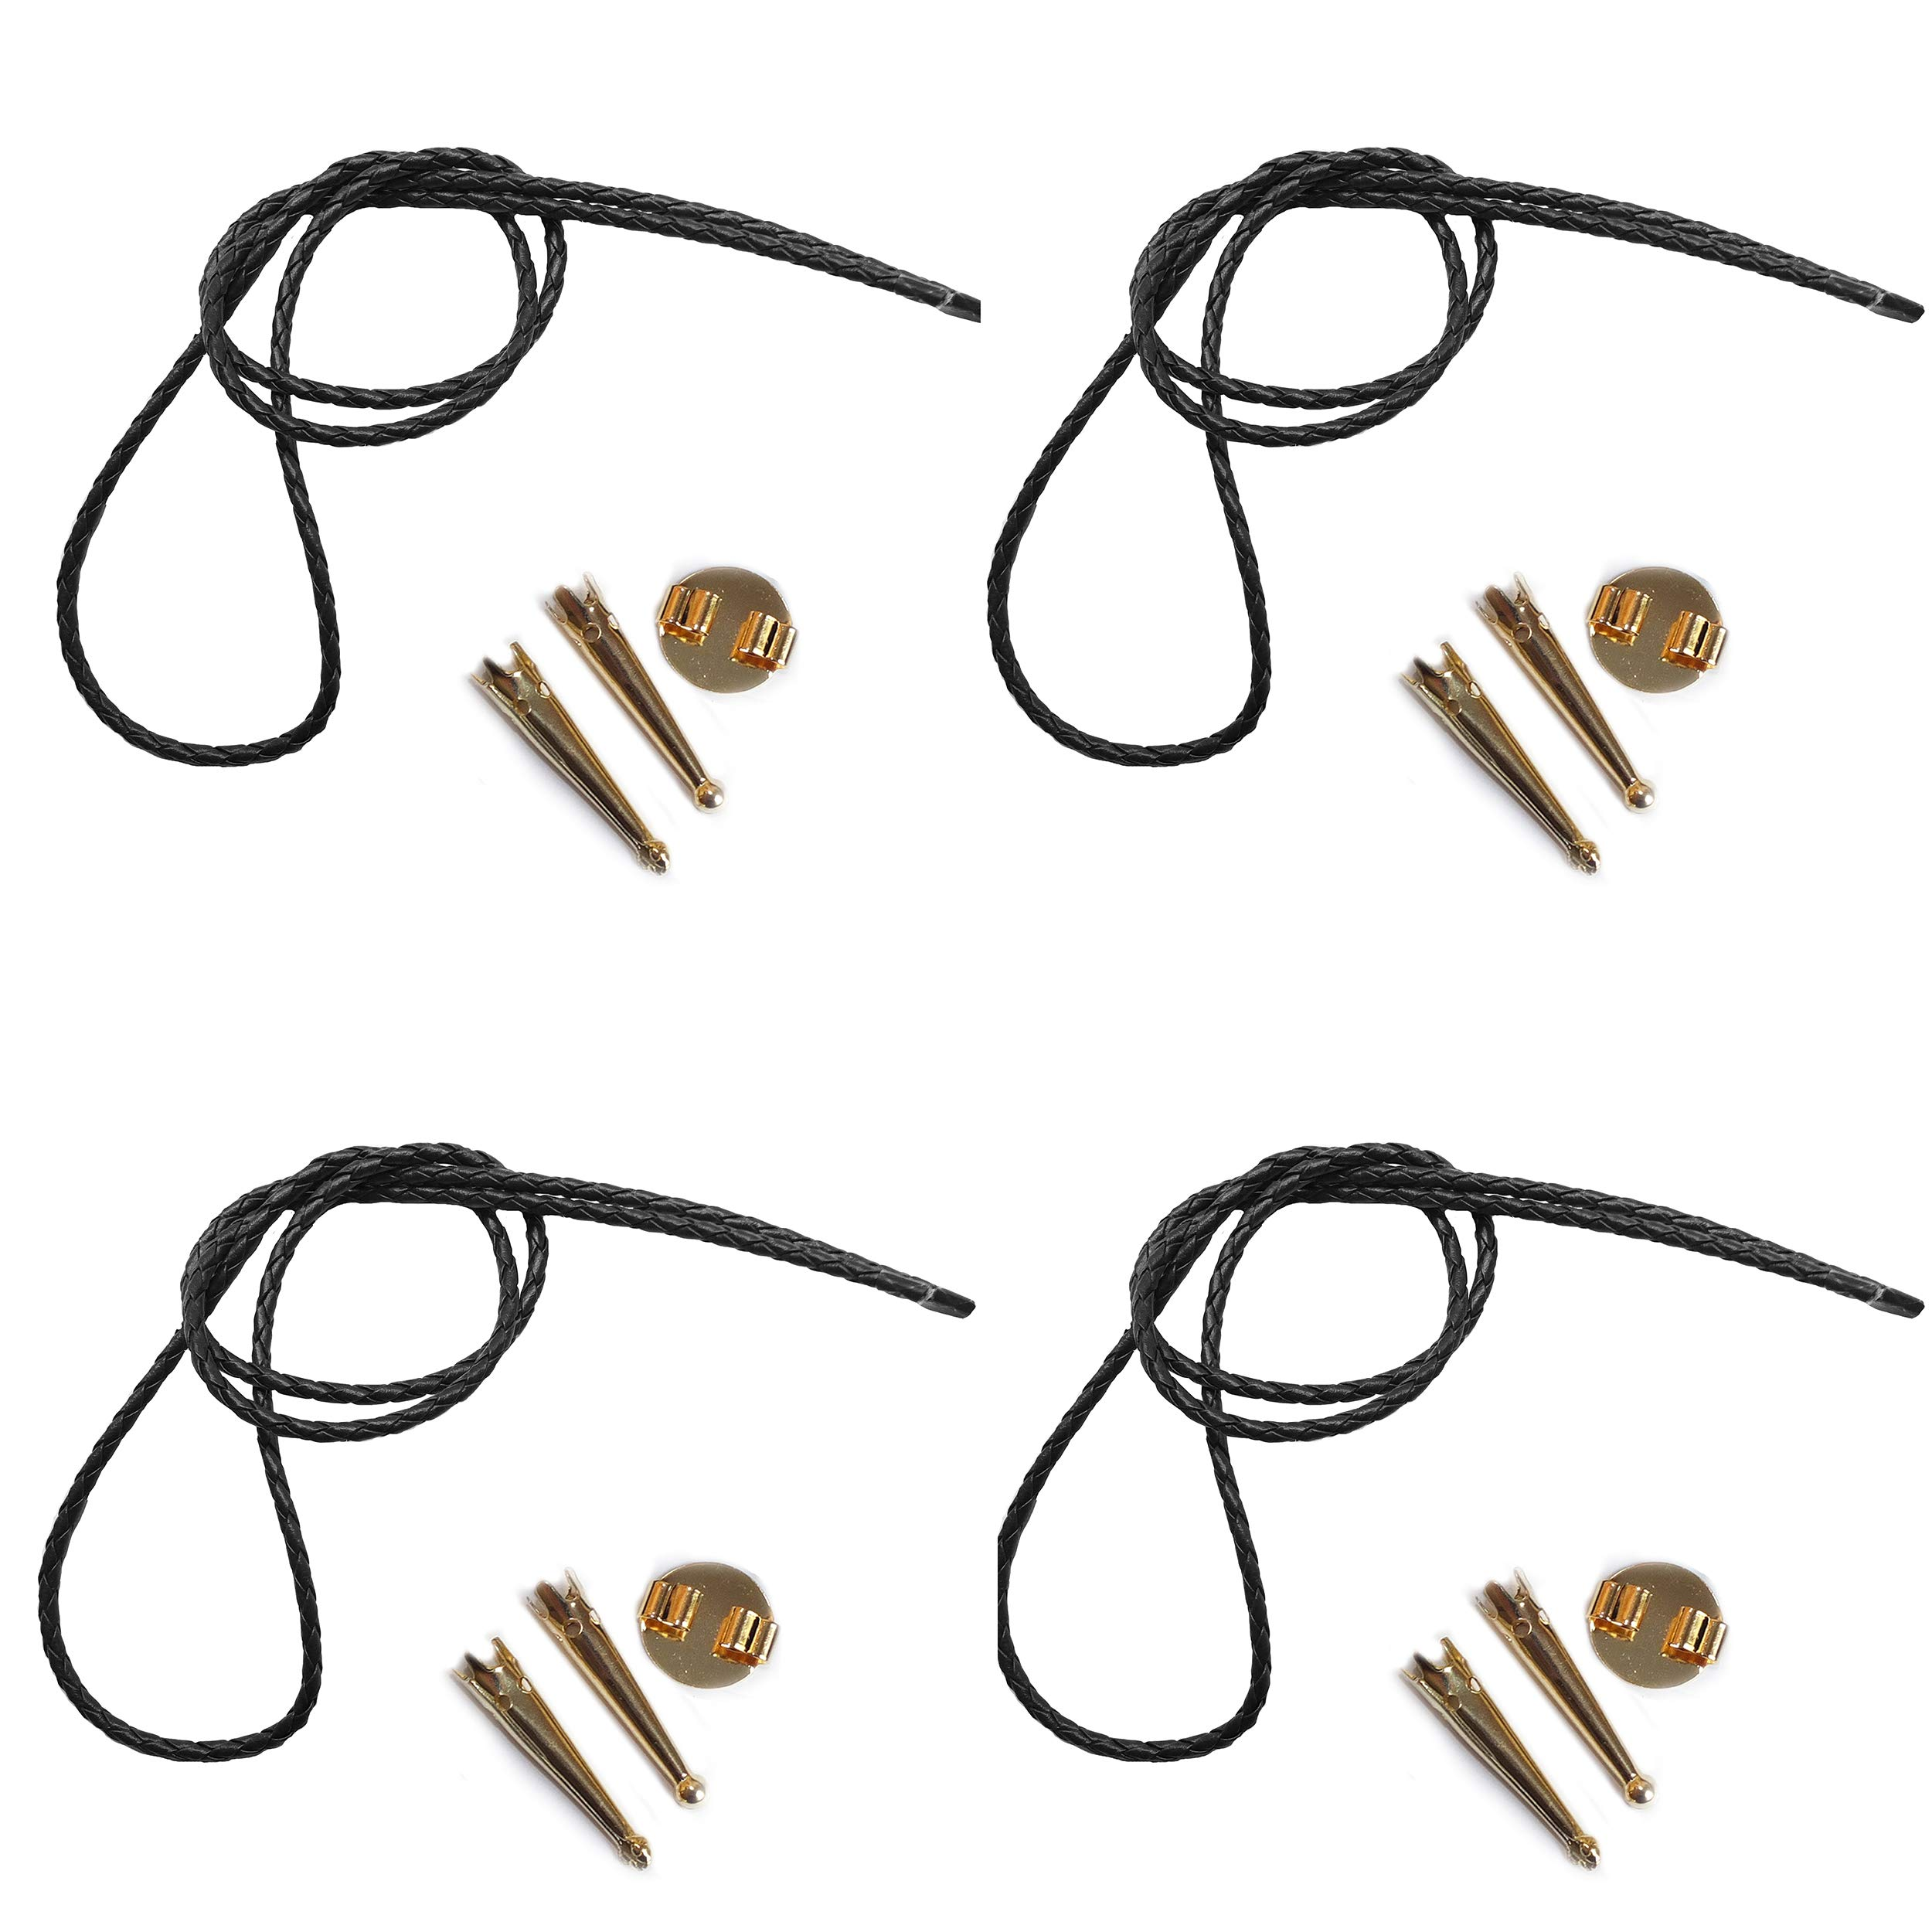 Blank Bolo String Tie Parts Kit Round Slide Smooth Tips Black Vinyl Braid DIY Gold Tone Supplies for 4 Ties